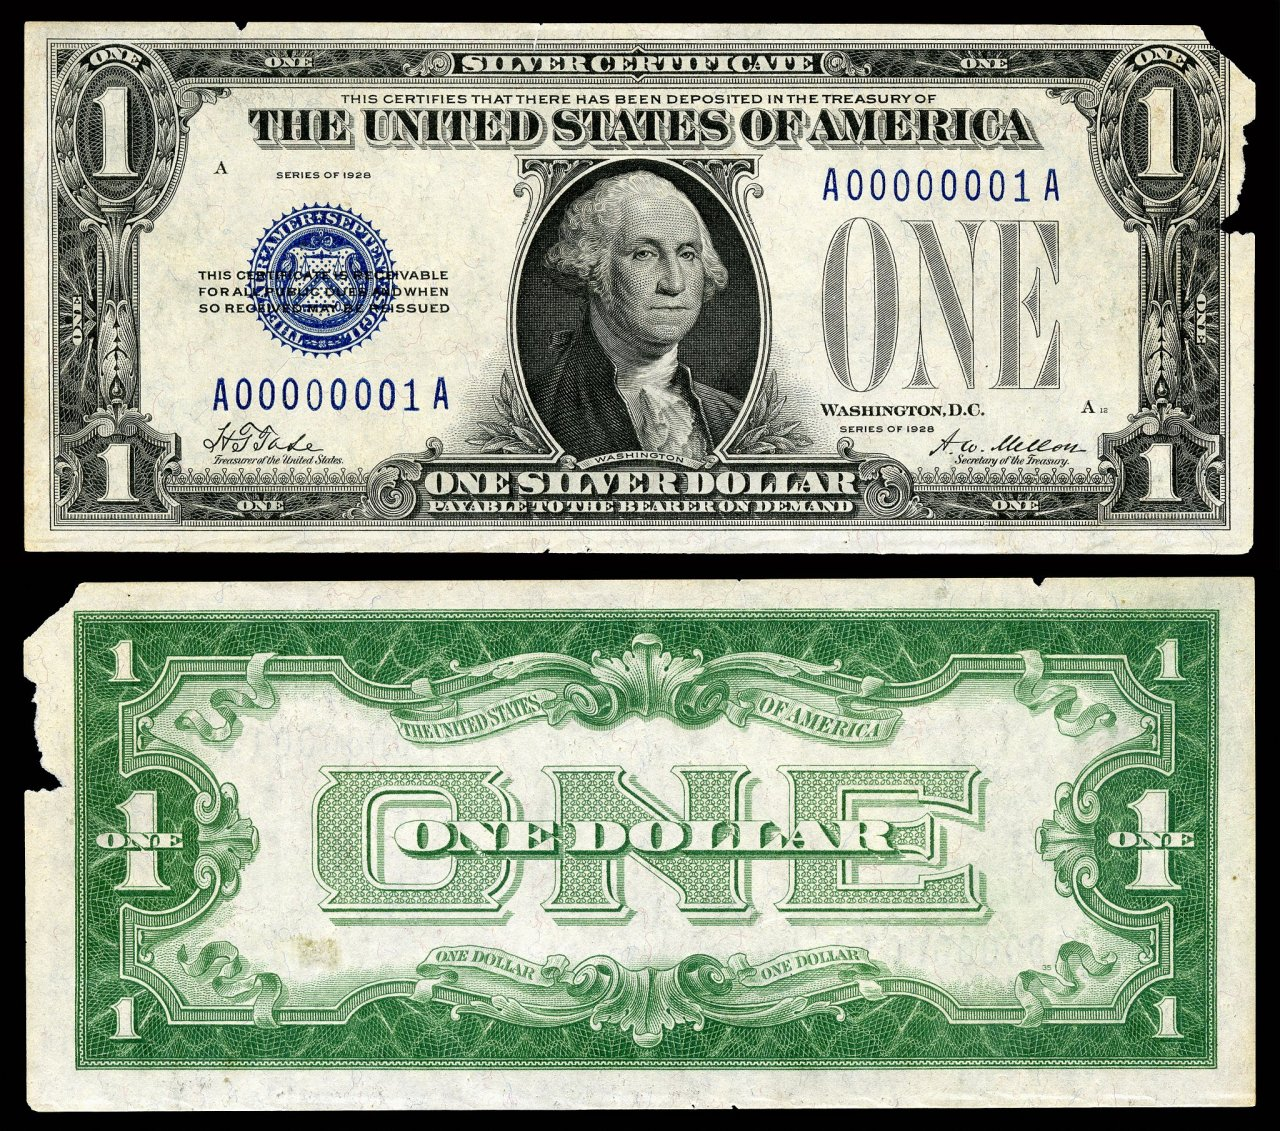 How much is a silver certificate worth artifact collectors how much is a 1 silver certificate worth 1betcityfo Images